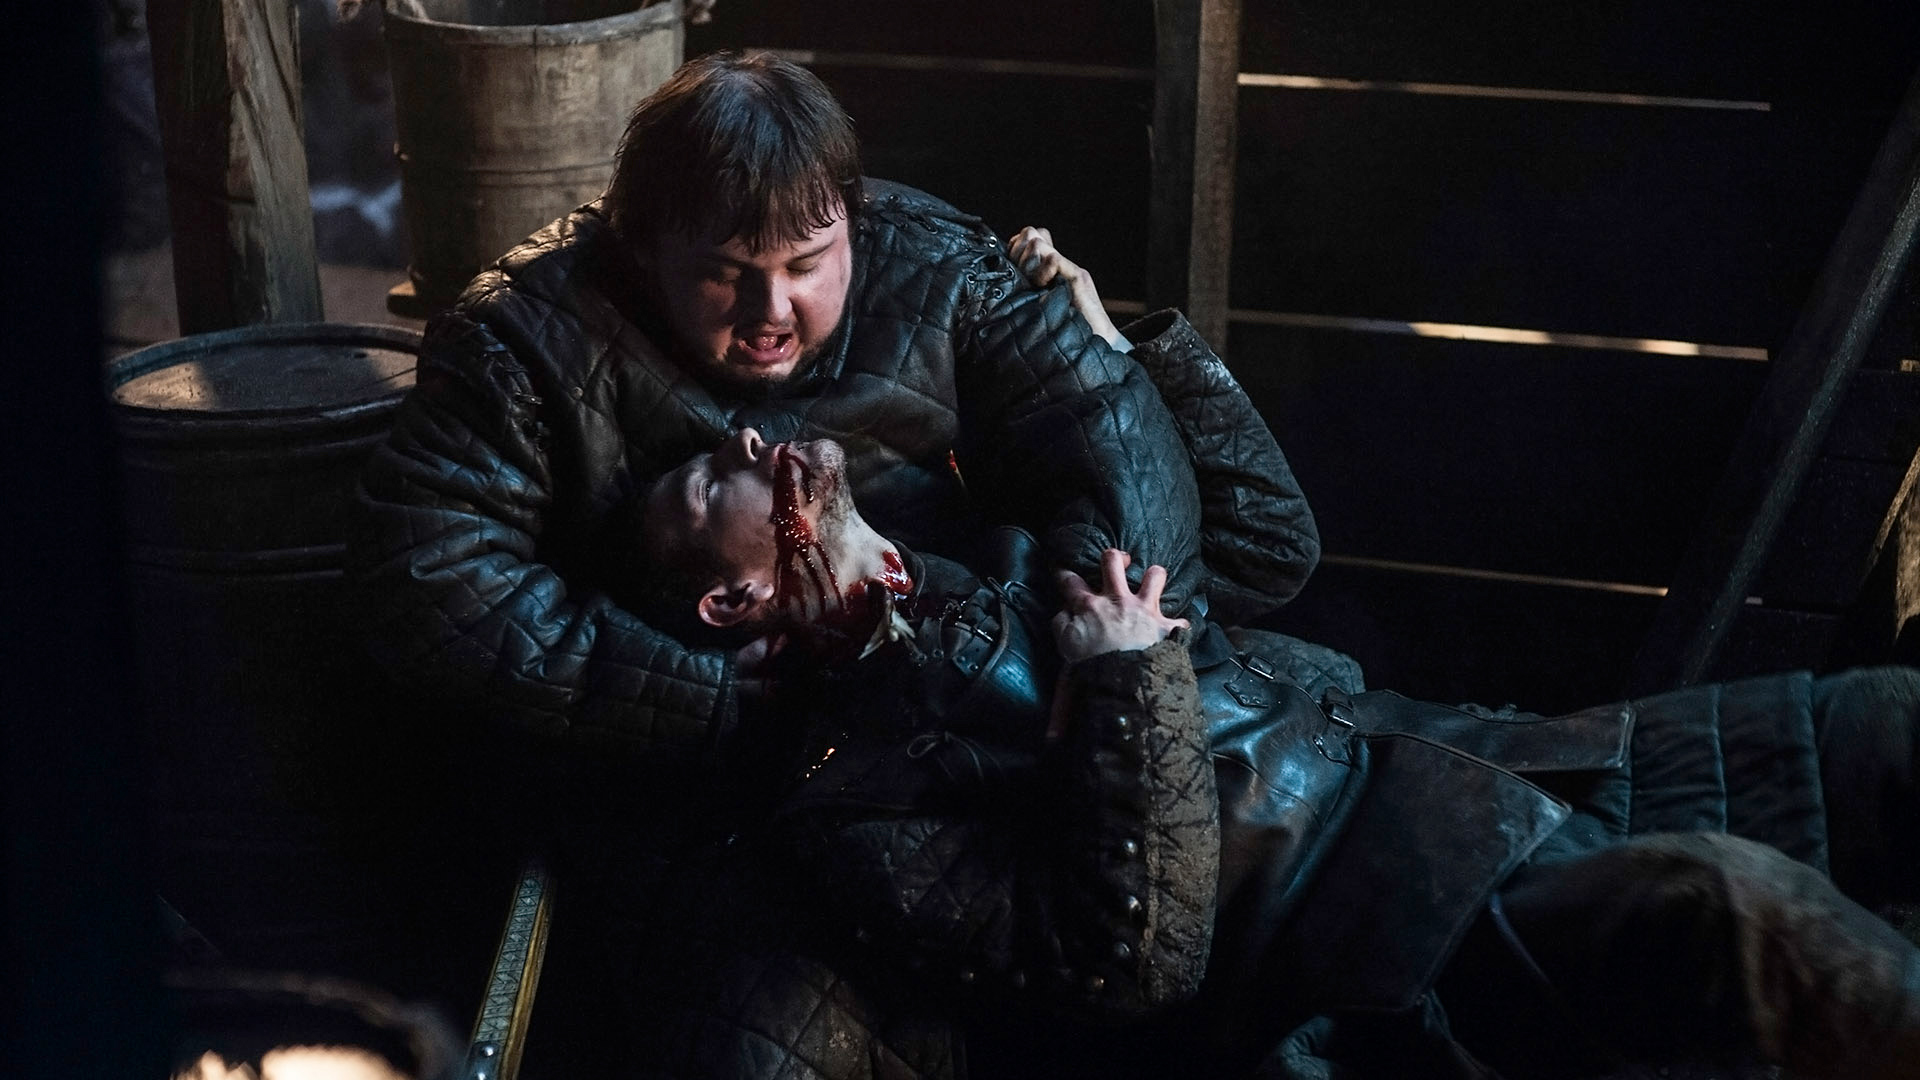 18f5ef57b9 Season 4, Episode 9 – The Watchers on the Wall - Game of Thrones ...